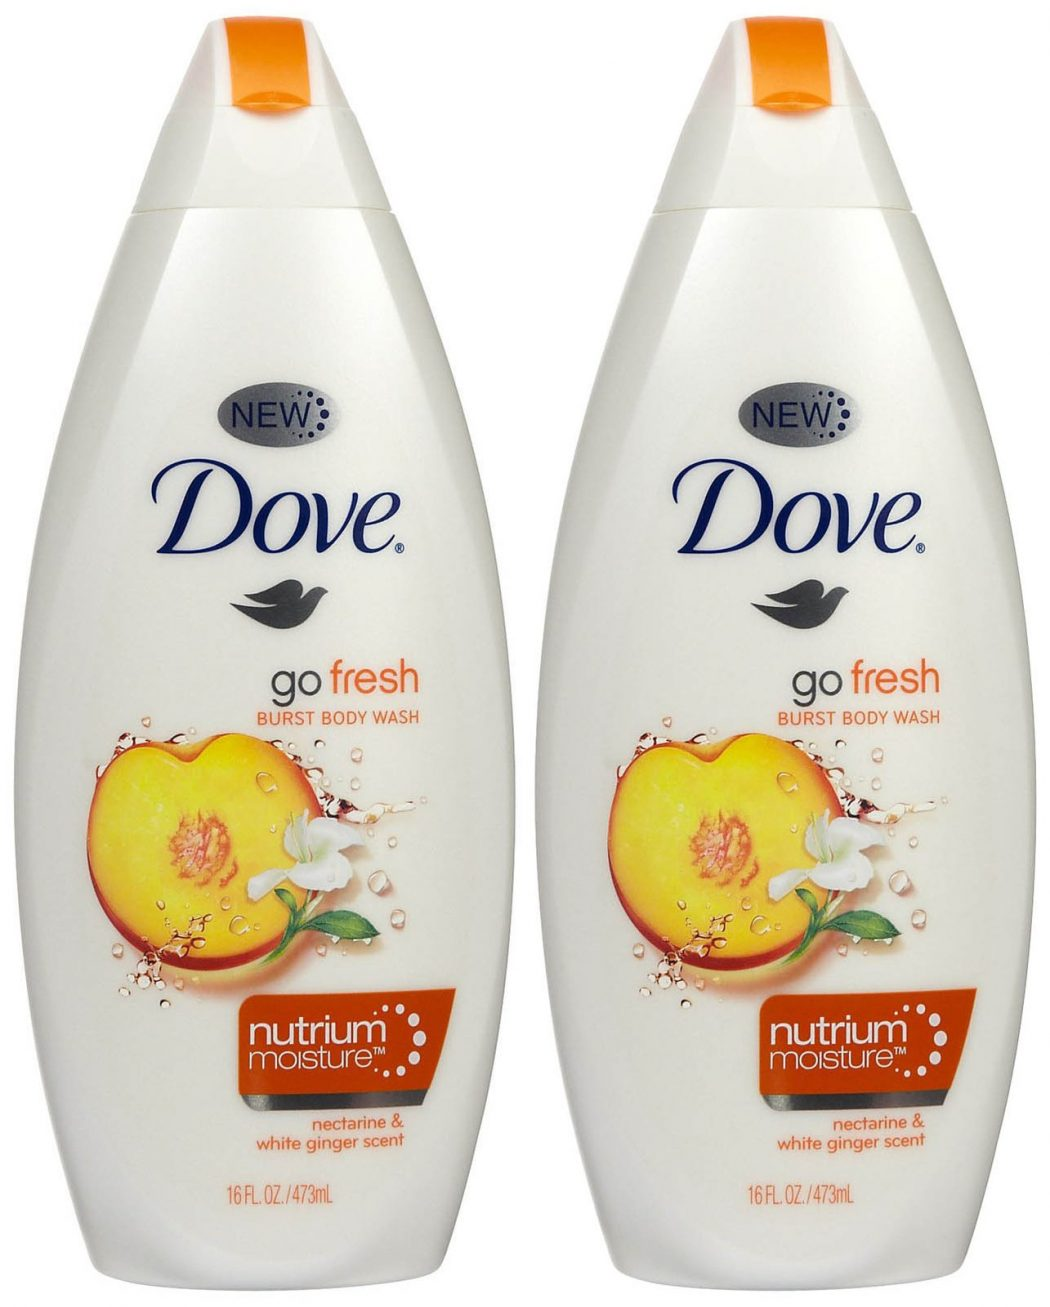 Dove-Body-Wash5 6 Best-Selling Women's Beauty Products in 2018